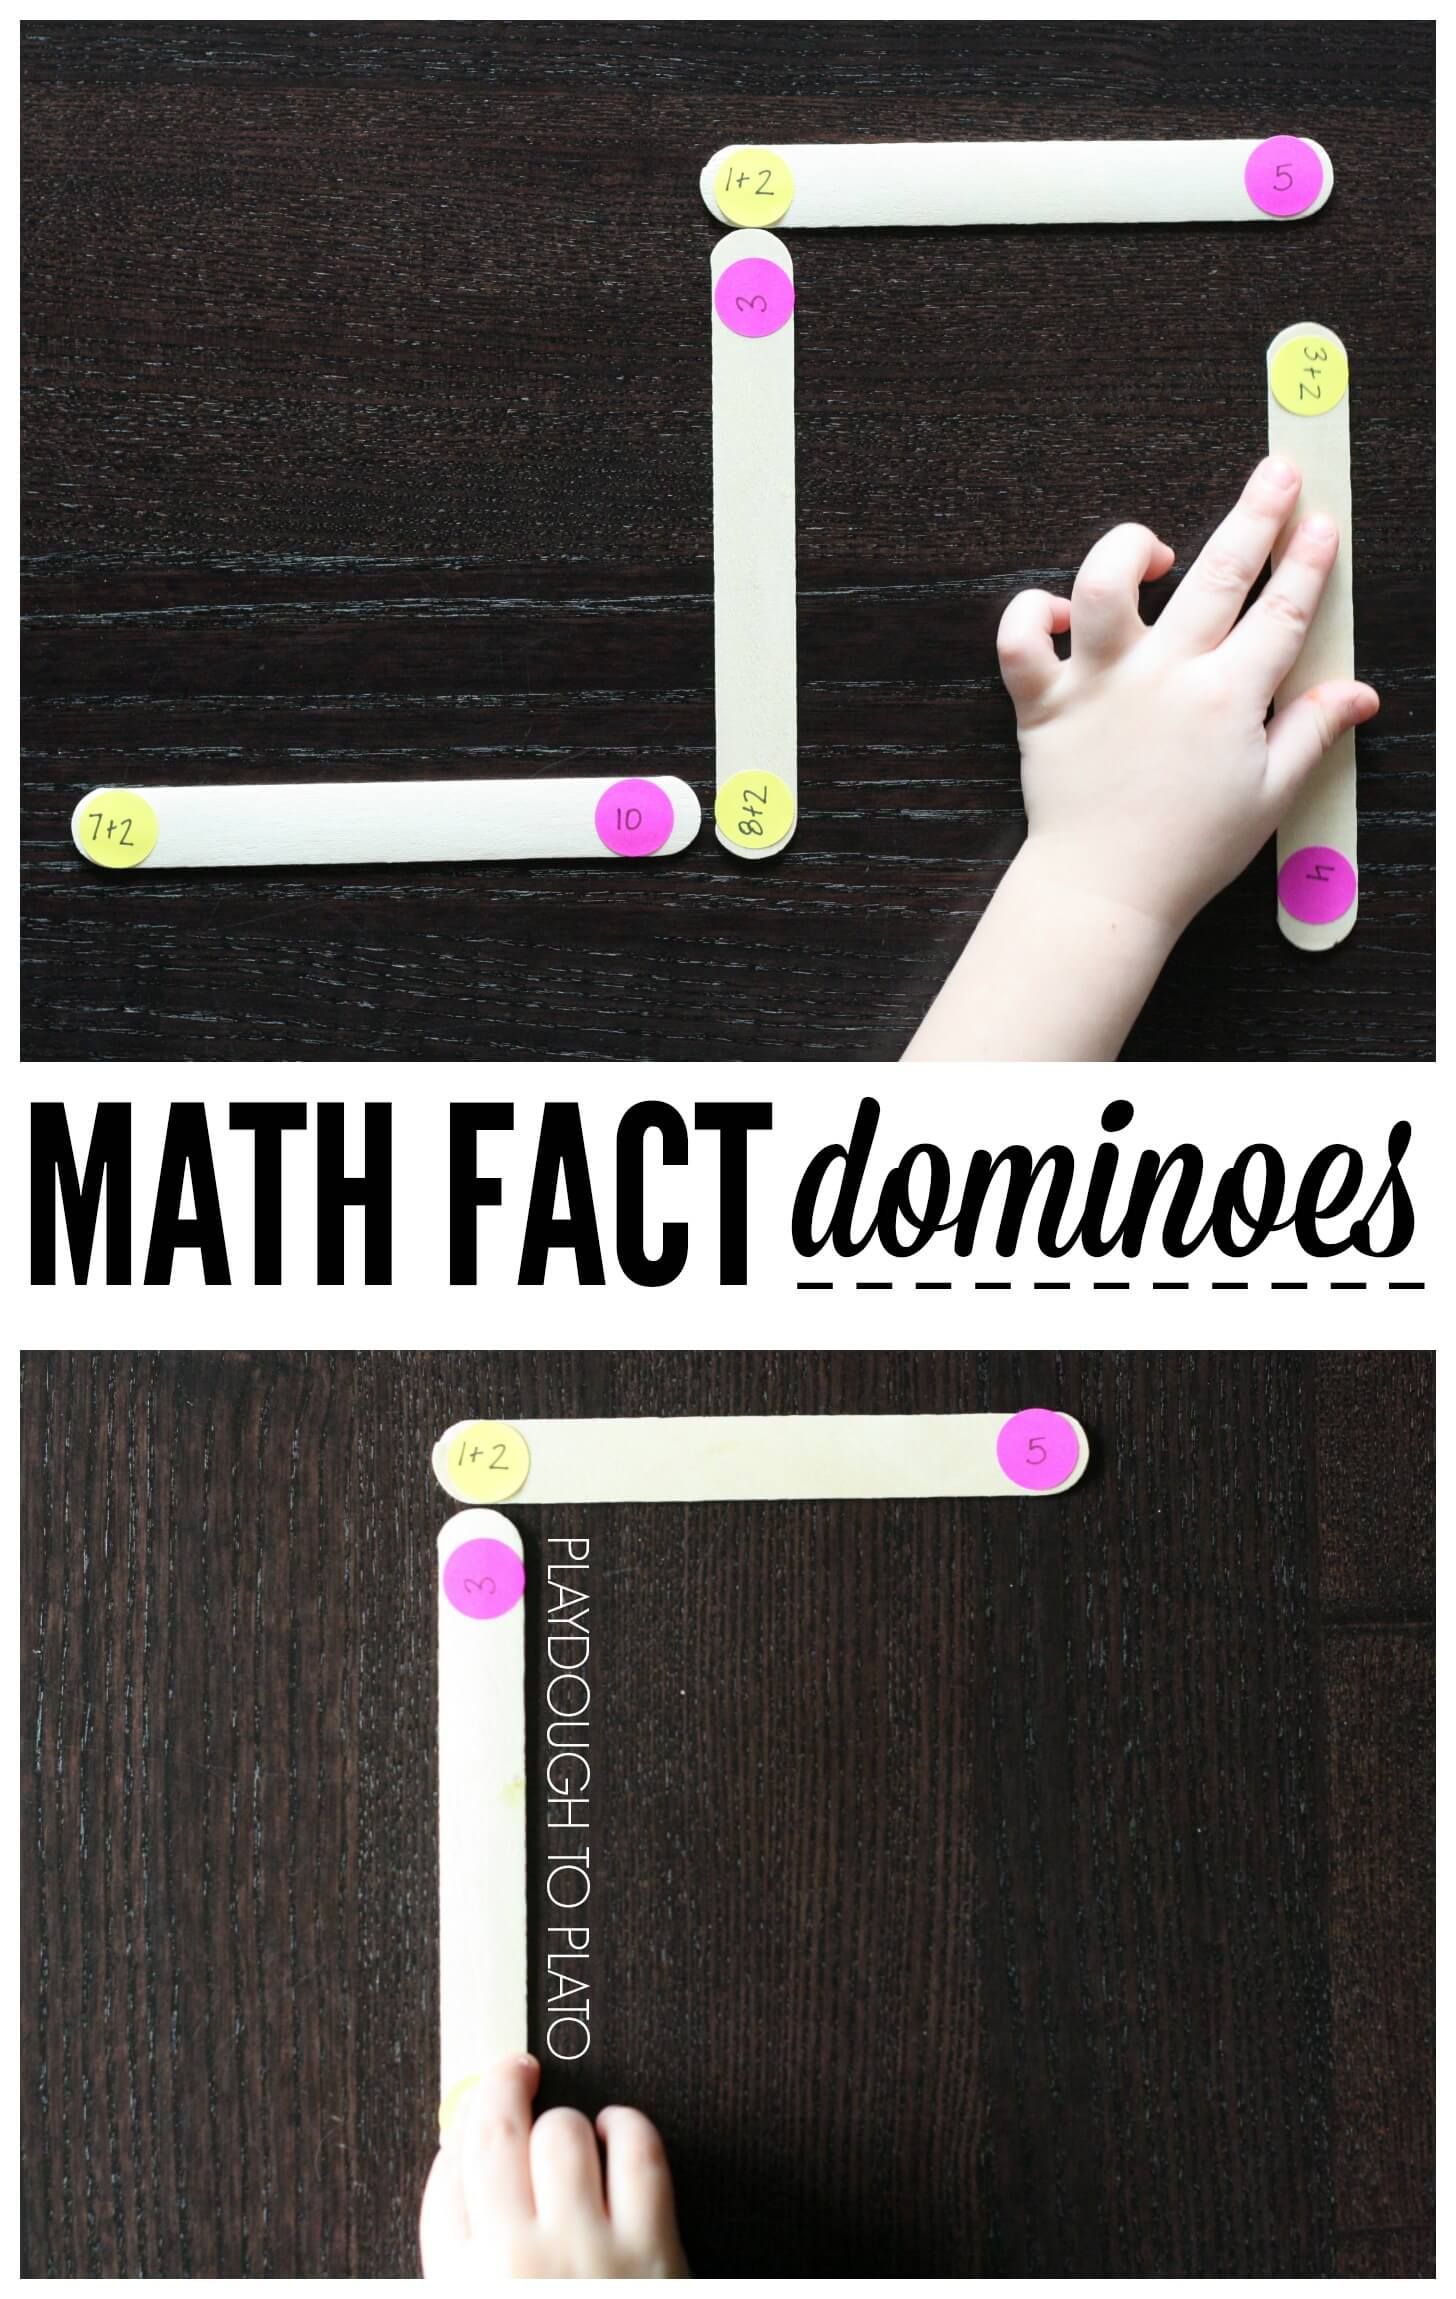 Math Fact Dominoes